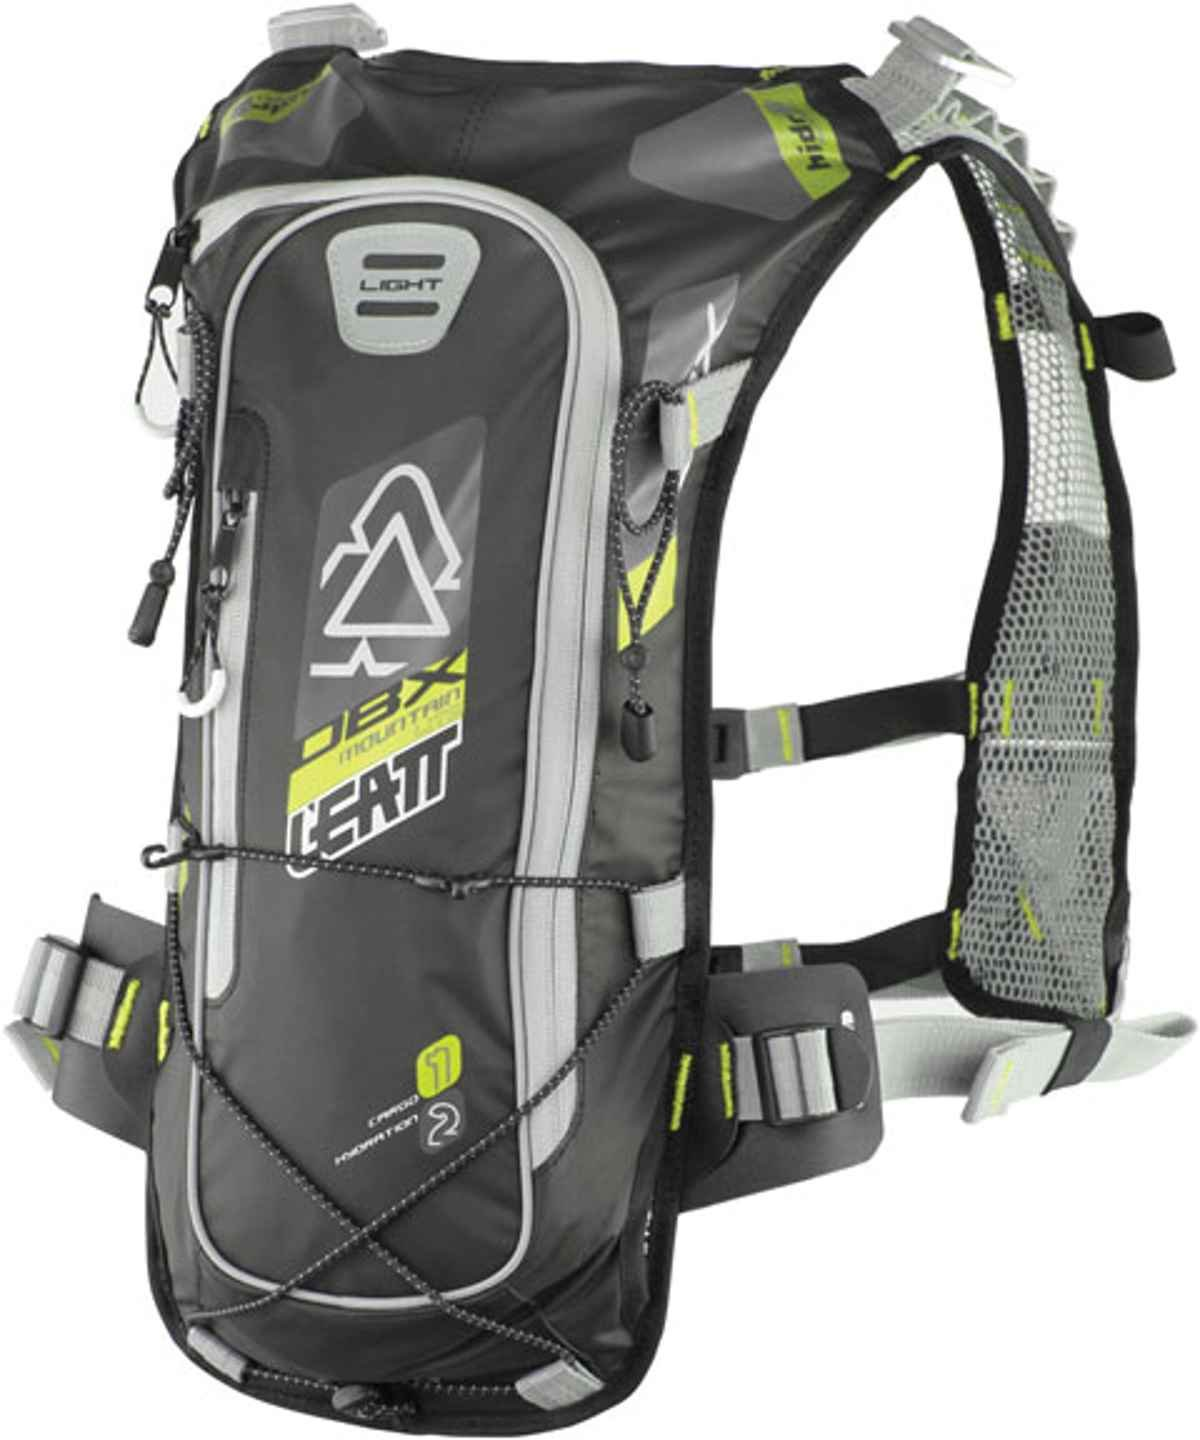 Leatt DBX Mountain Lite 2.0 Hydration System – ライム/ブラック X-Small/2X-Large 7016000120_Lime/Noir B01684CCZM  X-Small/2X-Large